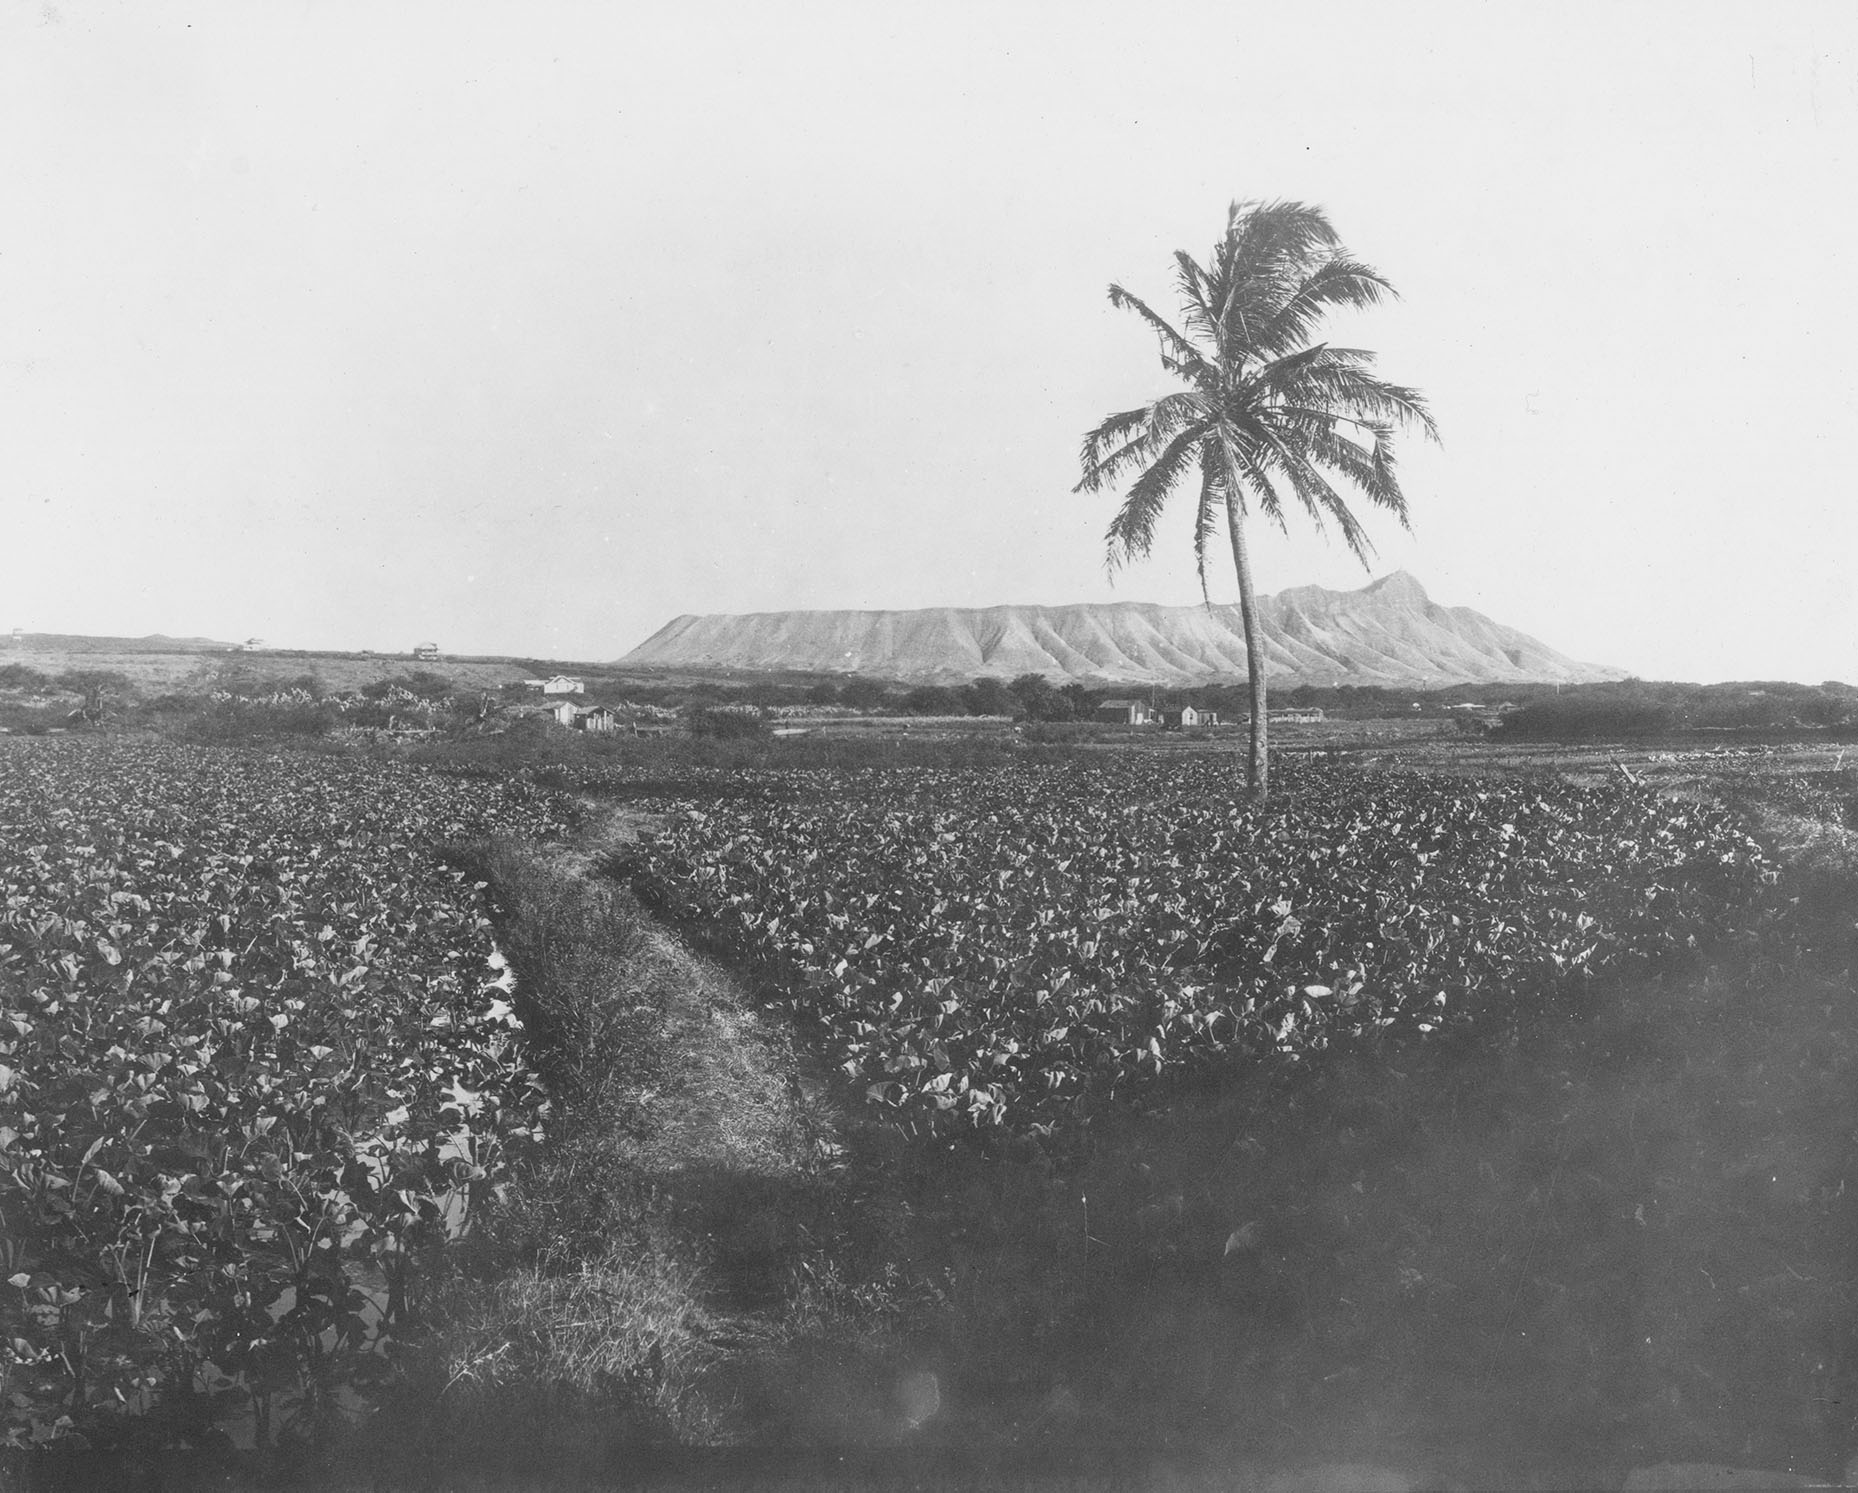 [Duck ponds in Honolulu] View of Diamond Head from the duck ponds in Honolulu, with taro fields in the foreground; Honolulu, Hawaiʻi, 1910. Photographer unknown, Bishop Museum Archives. Used with permission.